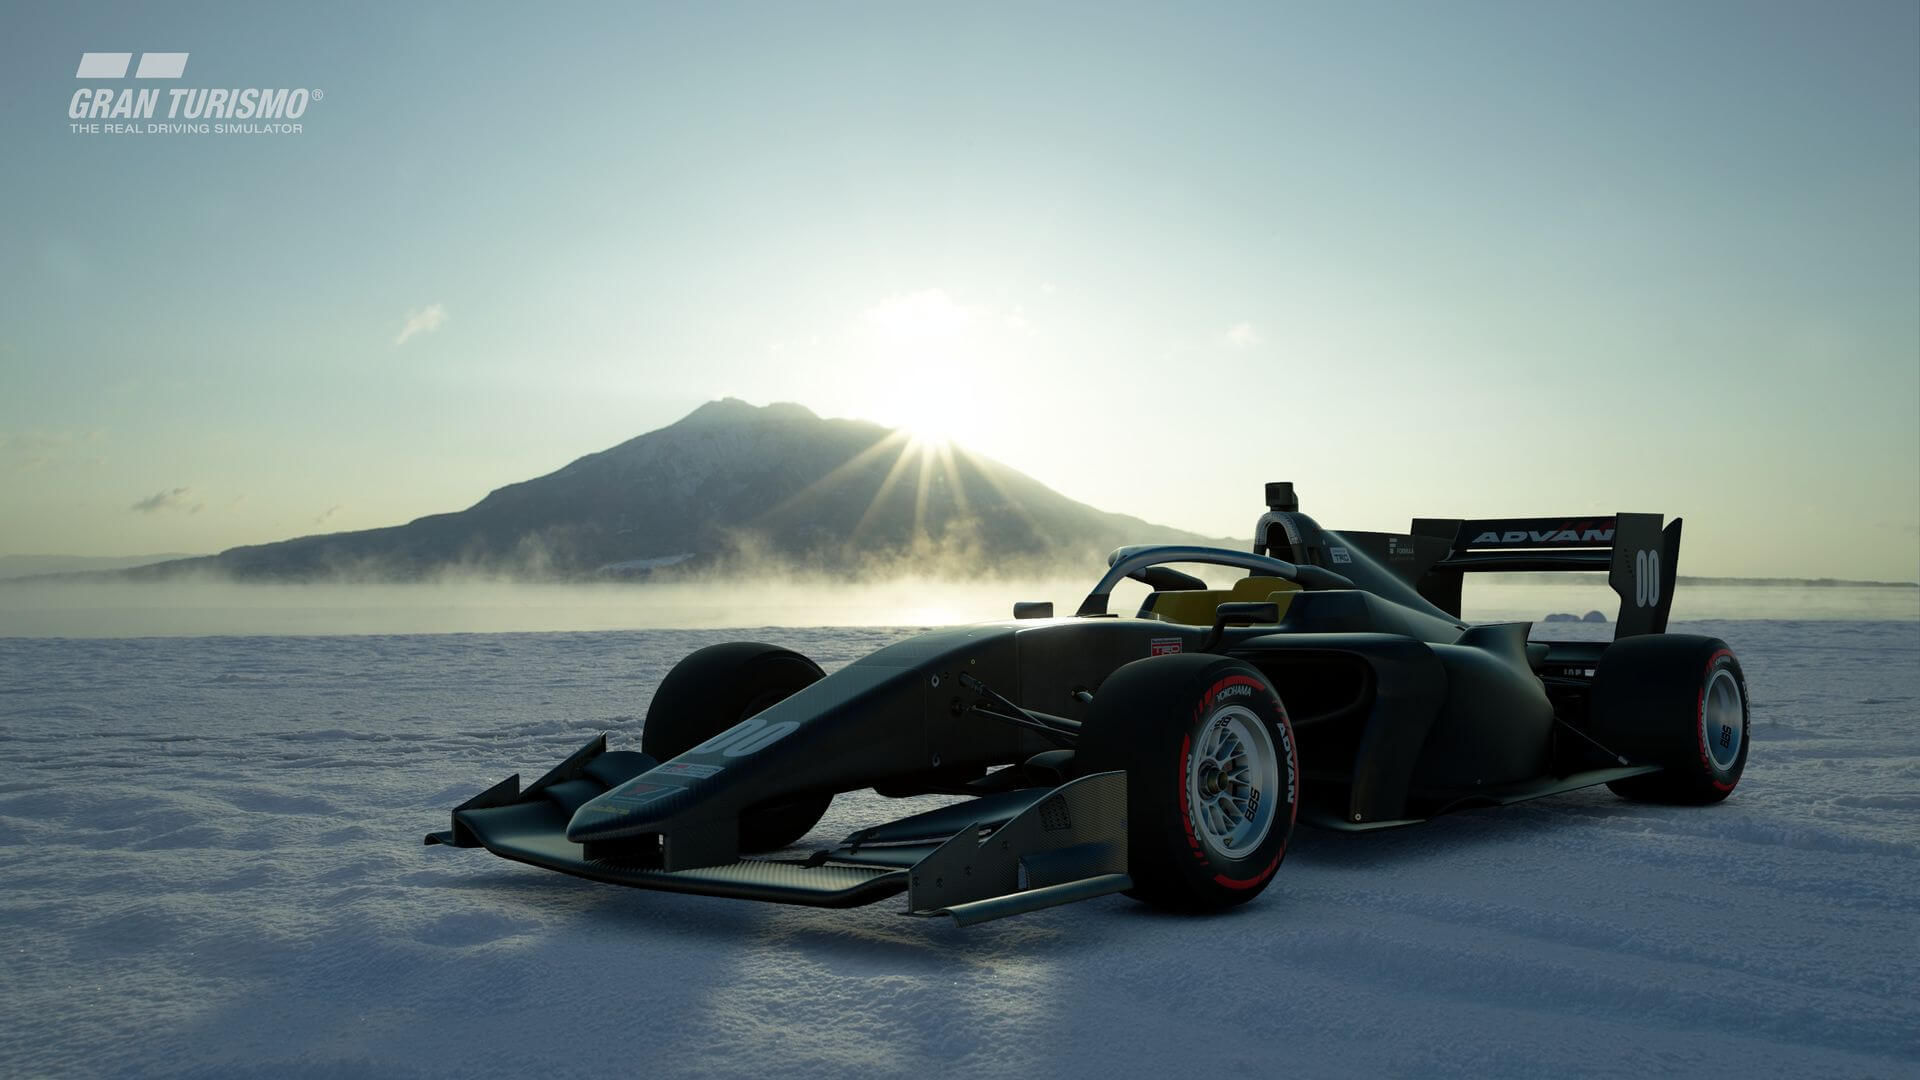 GT Sport Update 1 36 Released: New Cars, Manual KERS/DRS and More